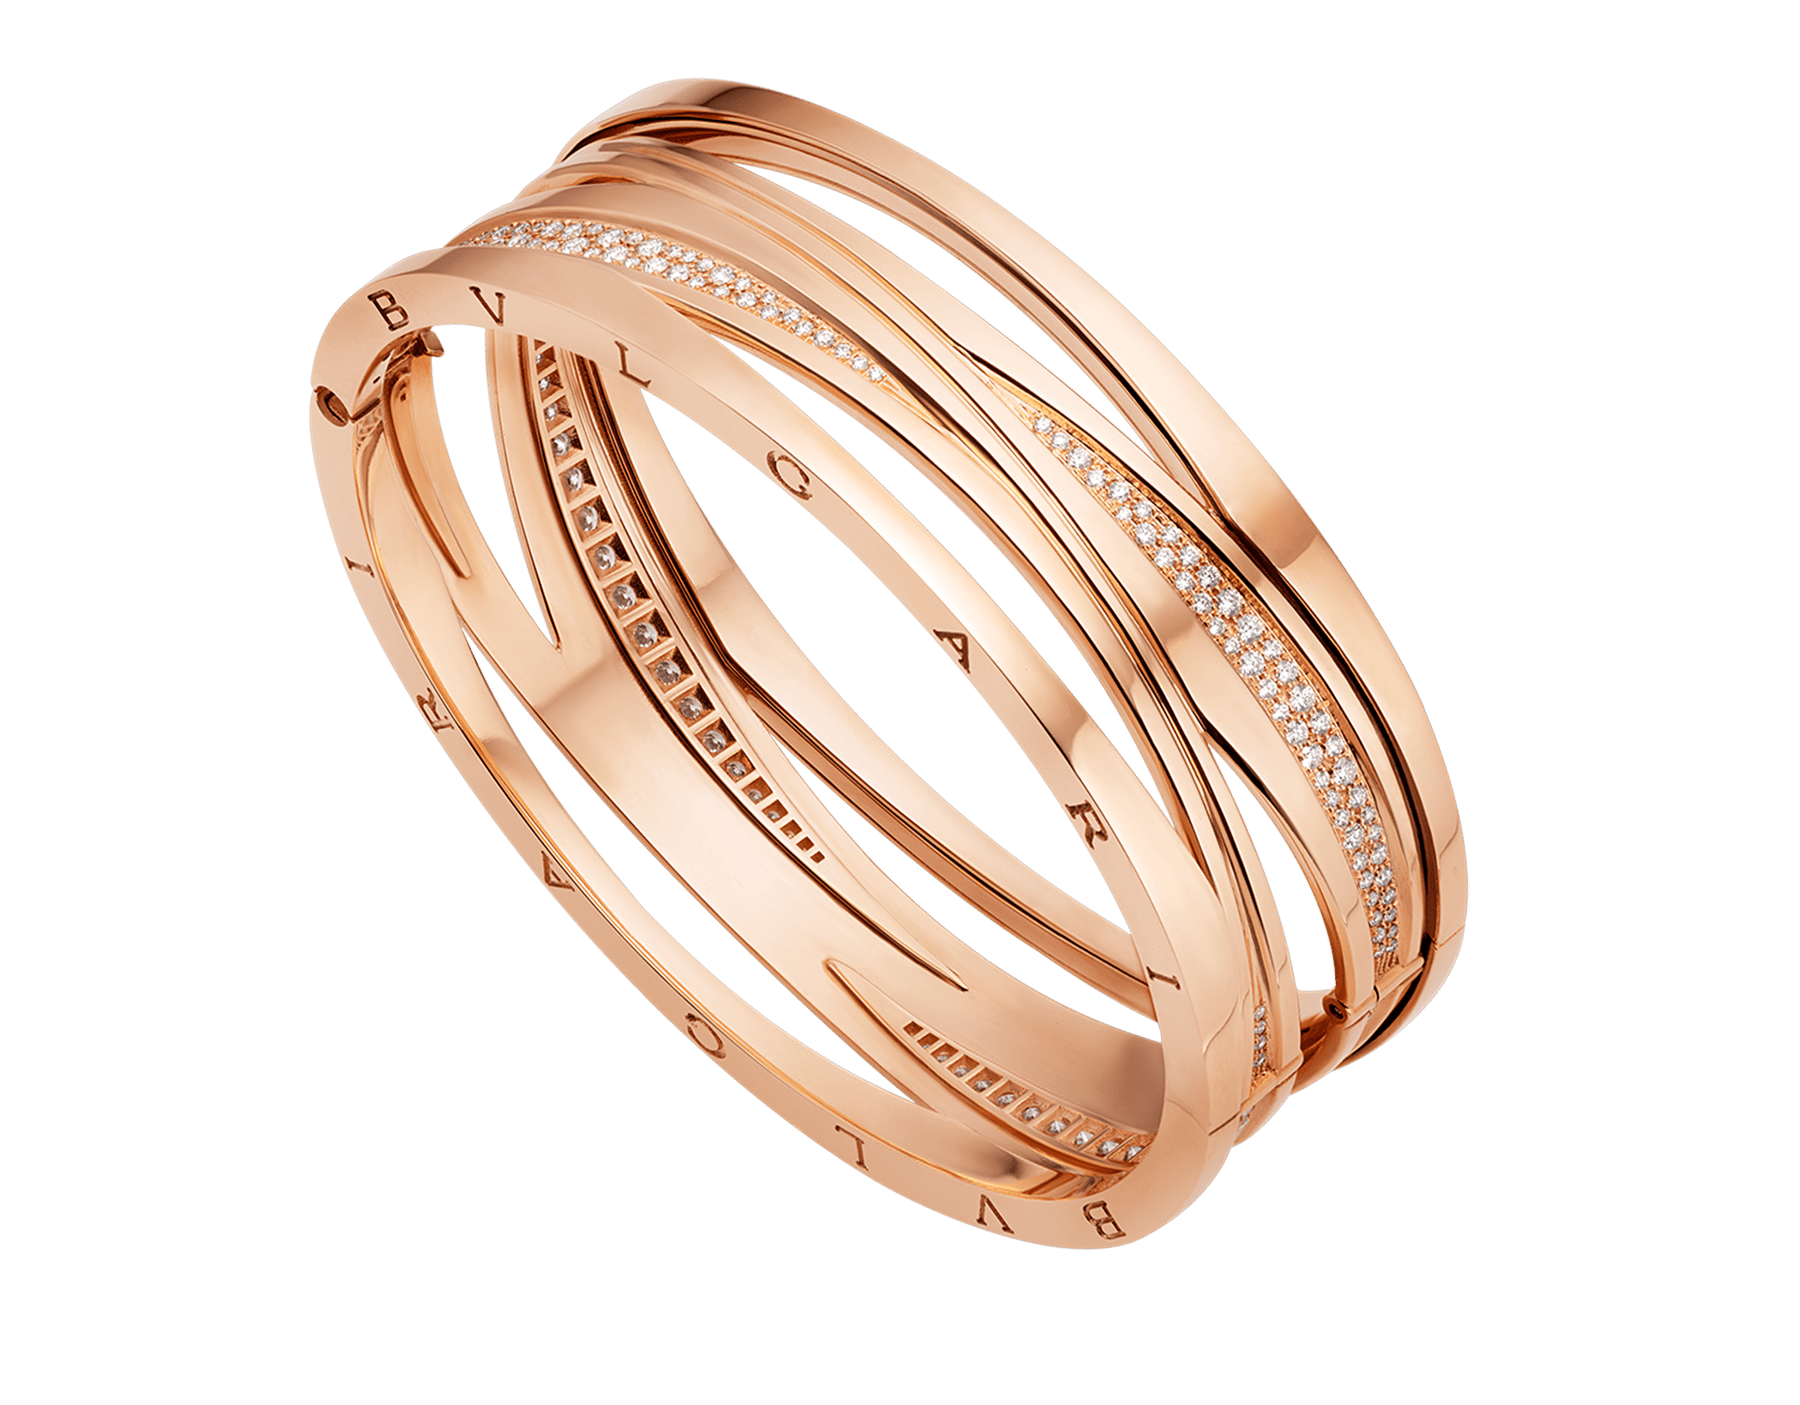 B.zero1 Design Legend bracelet in 18 kt rose gold set with pavé diamonds (1.45 ct) on the spiral BR858728 image 1